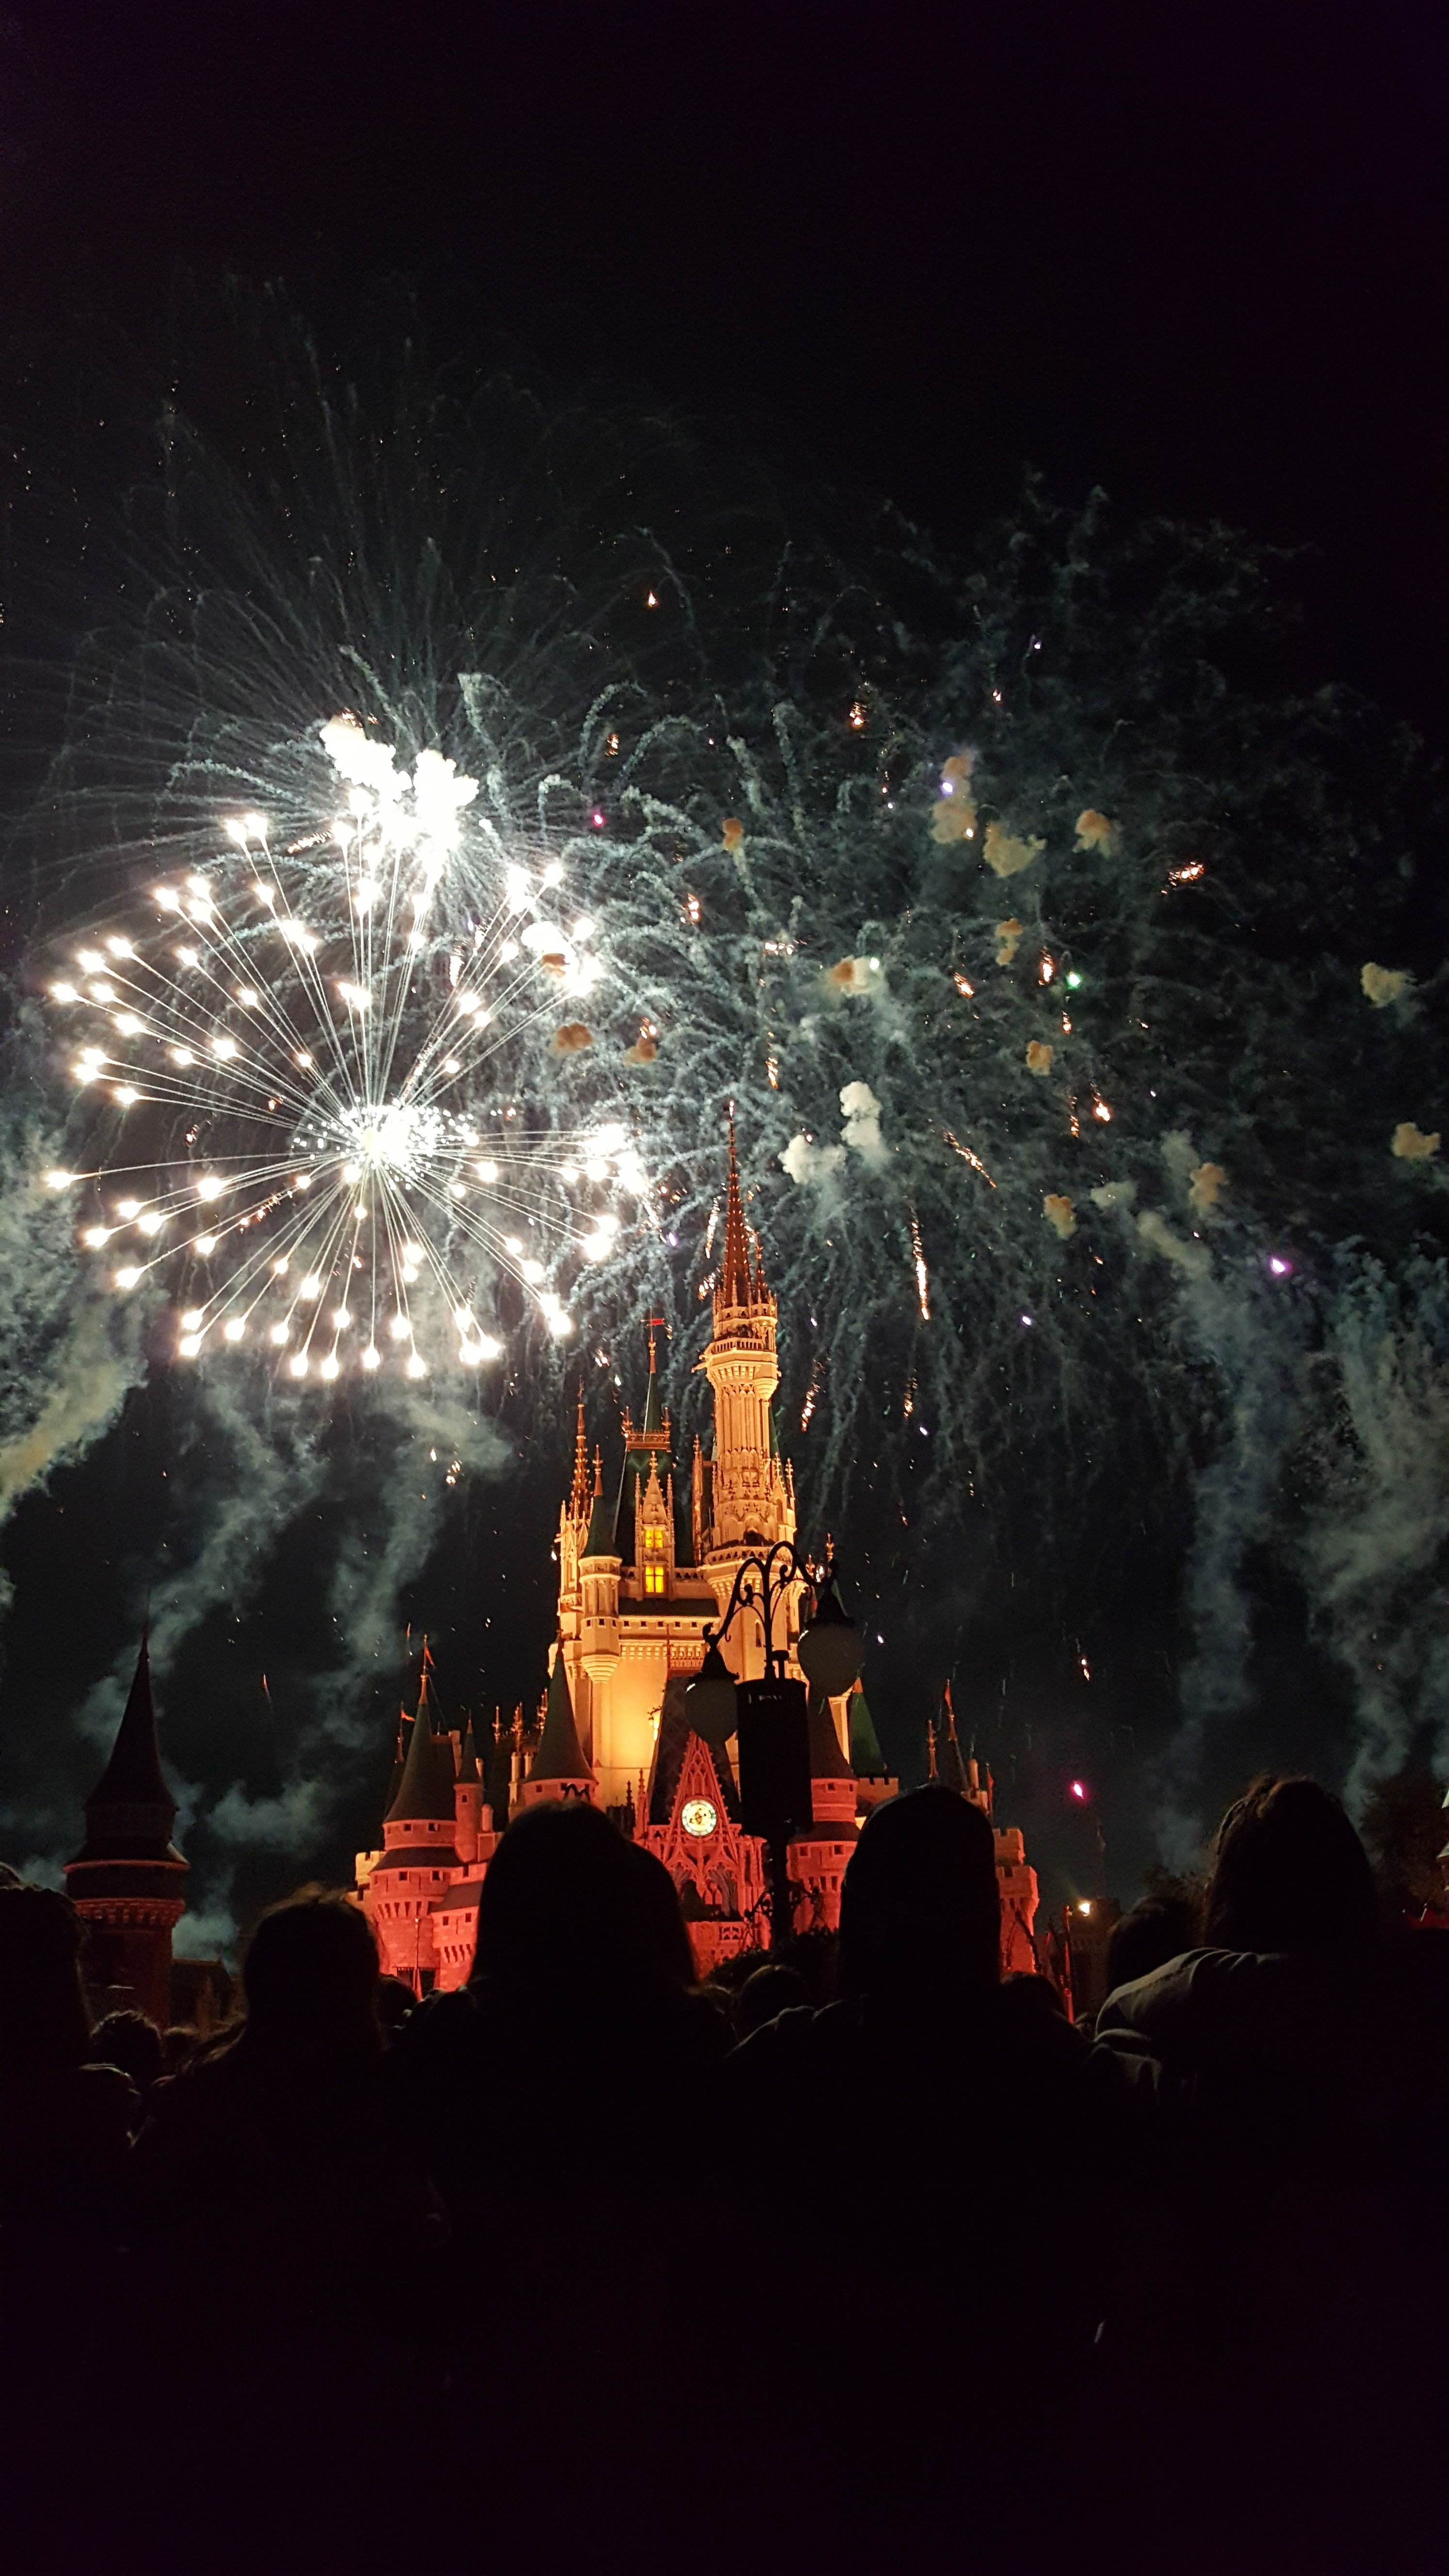 Photography of White and Gray Fireworks during Nighttime